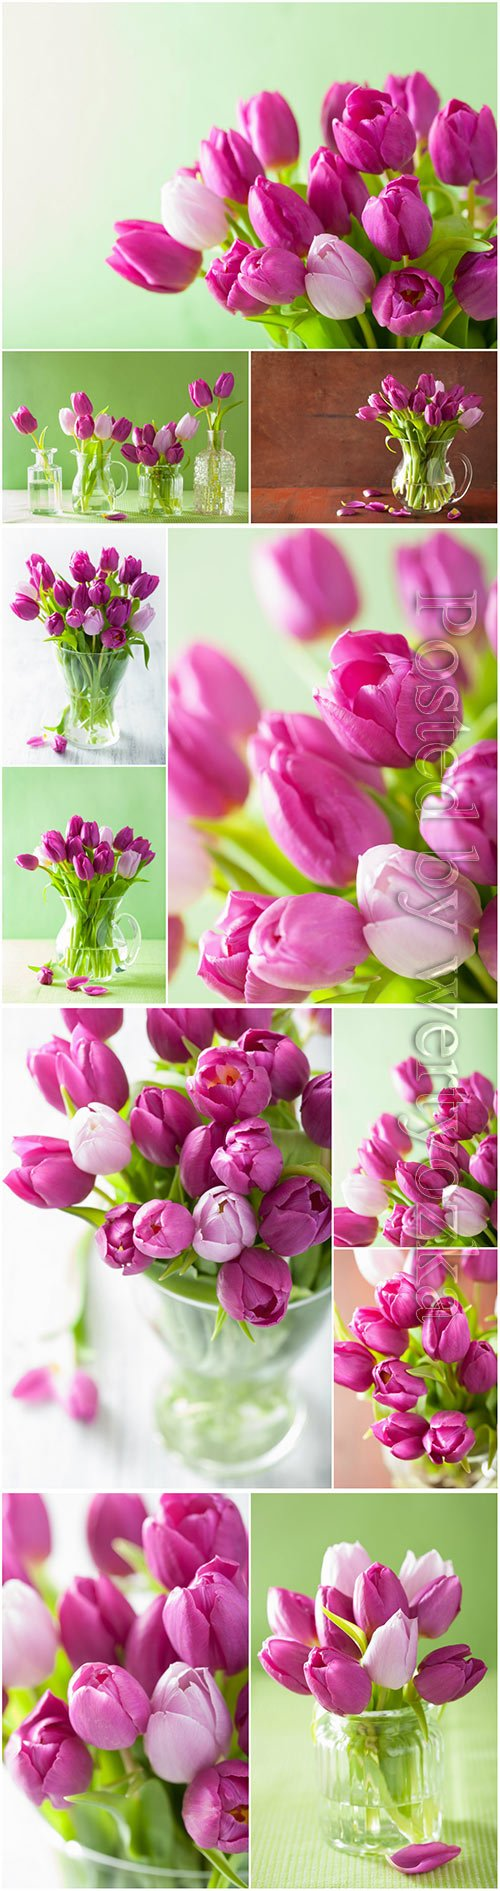 Tulips, spring flowers beautiful stock photo